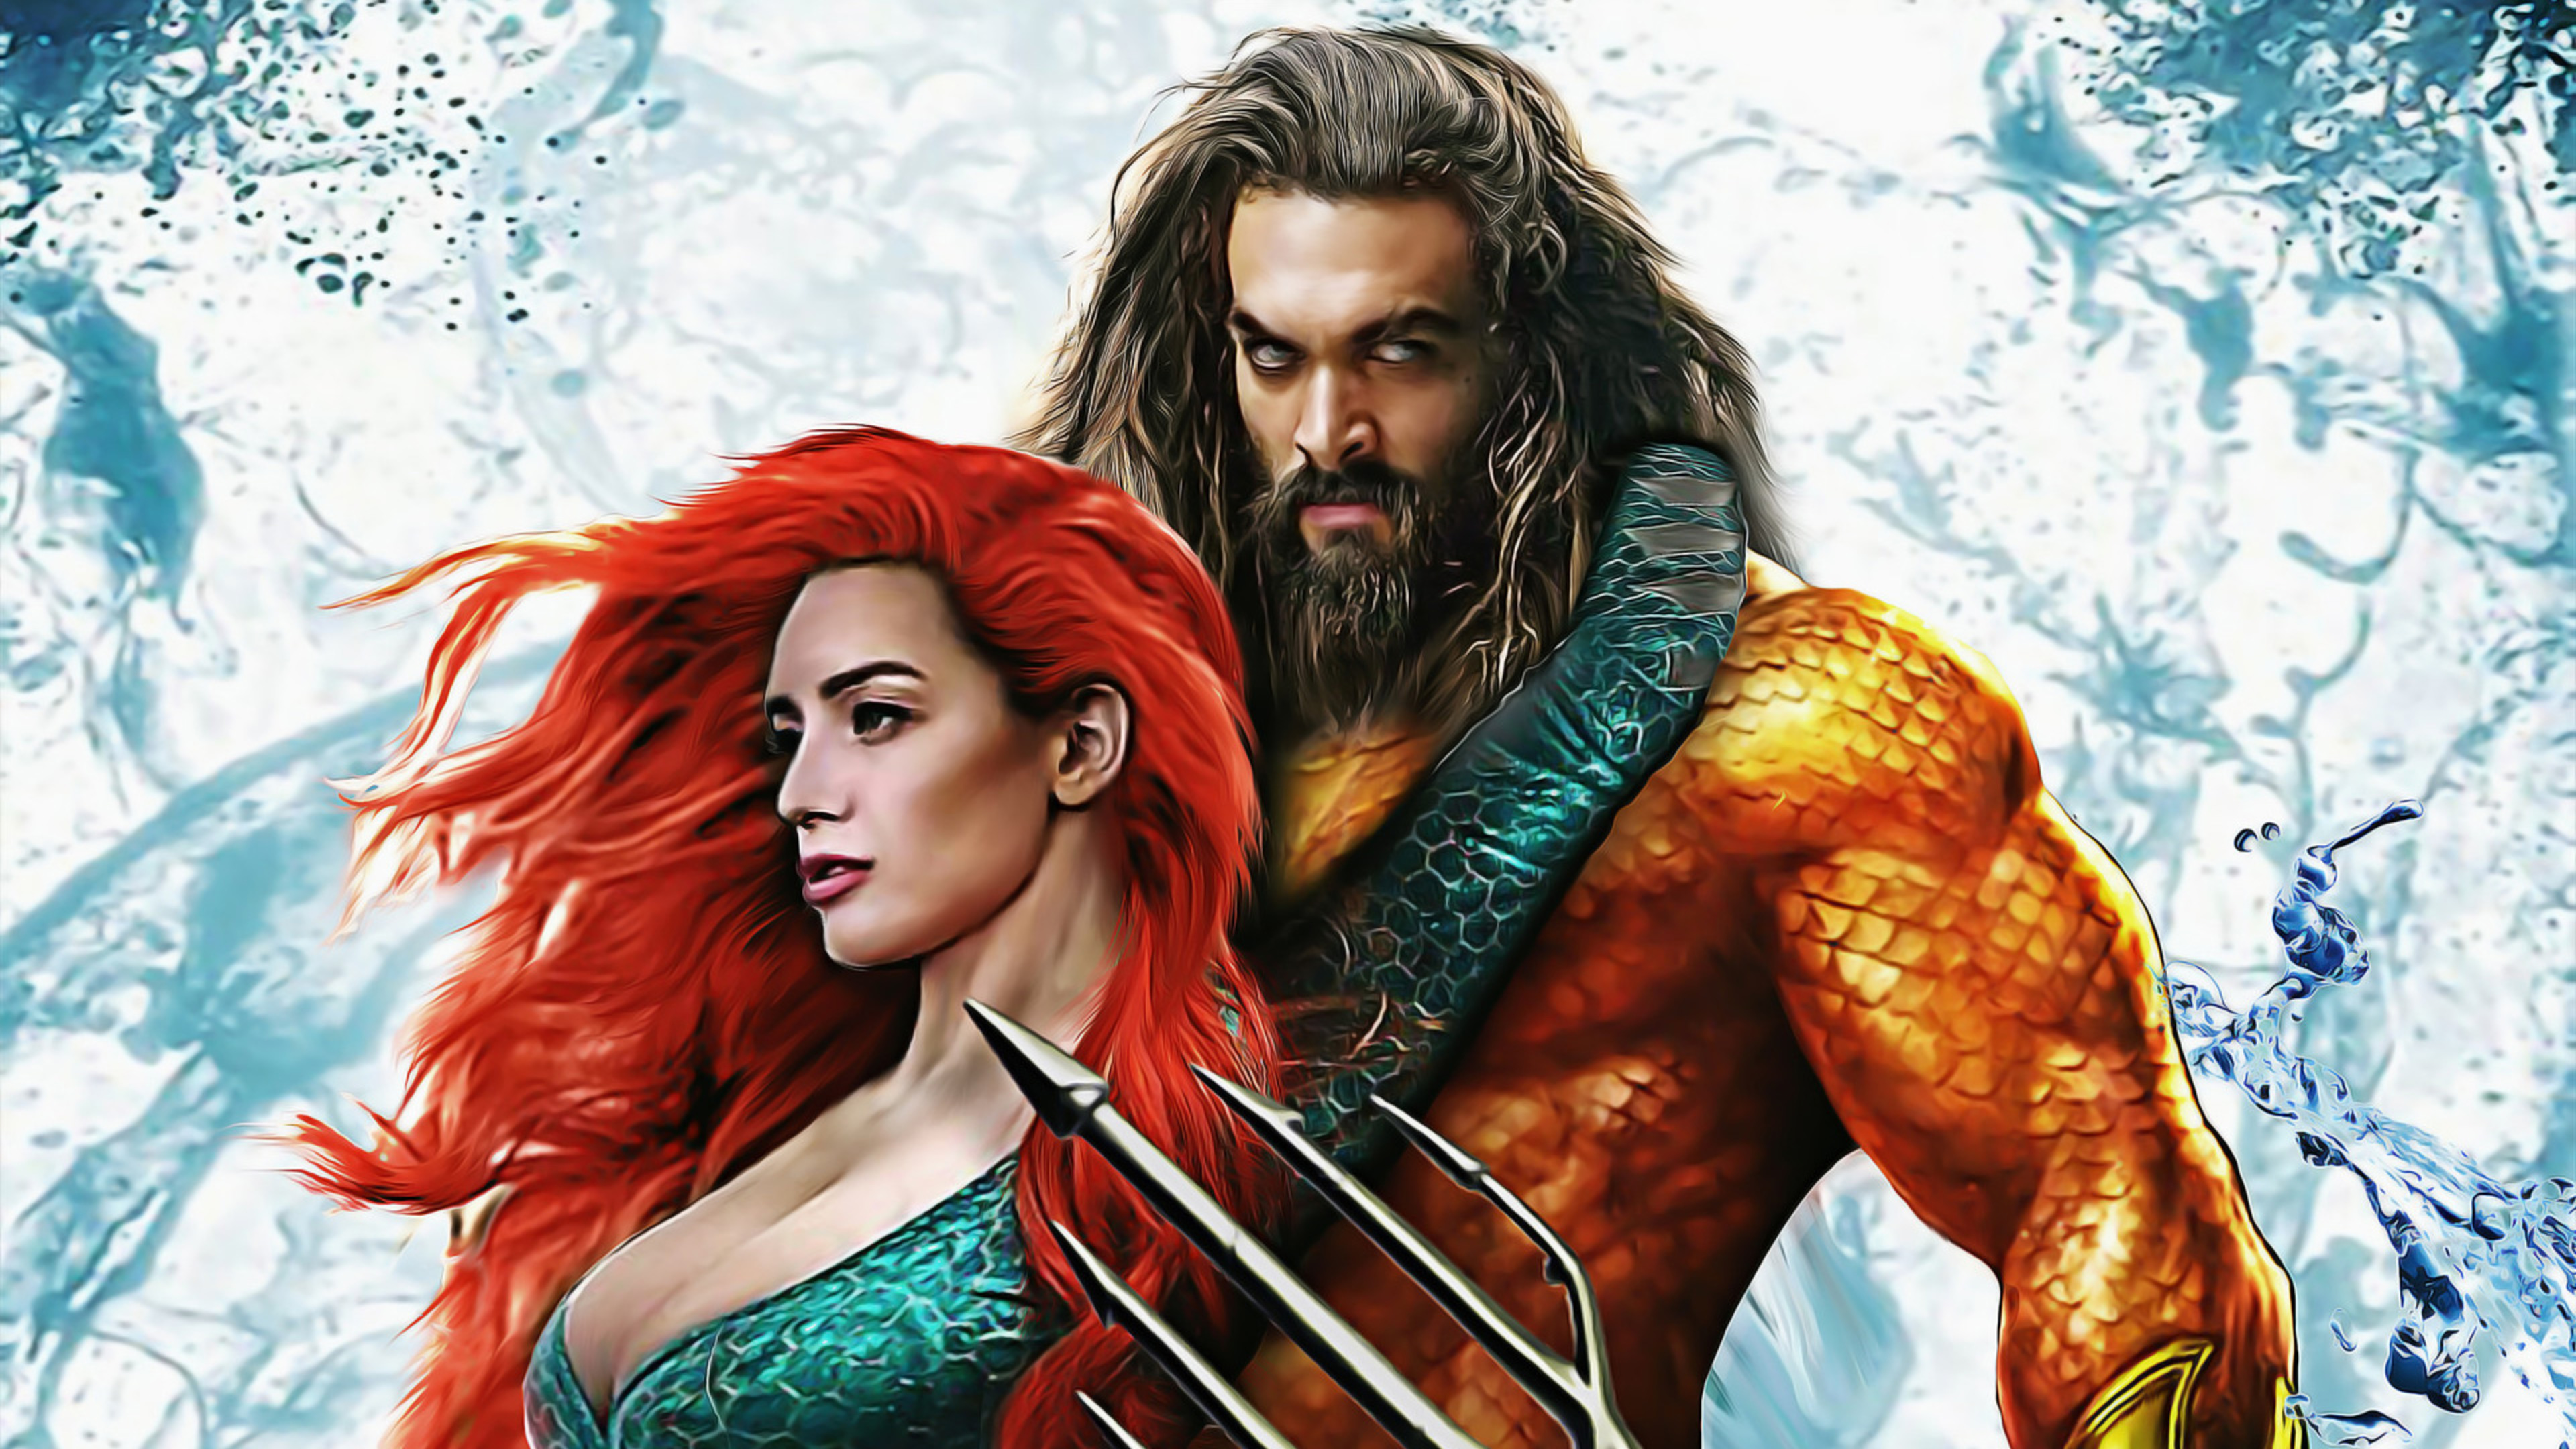 Aquaman And Mera Art 4k Wallpaper Best Wallpapers